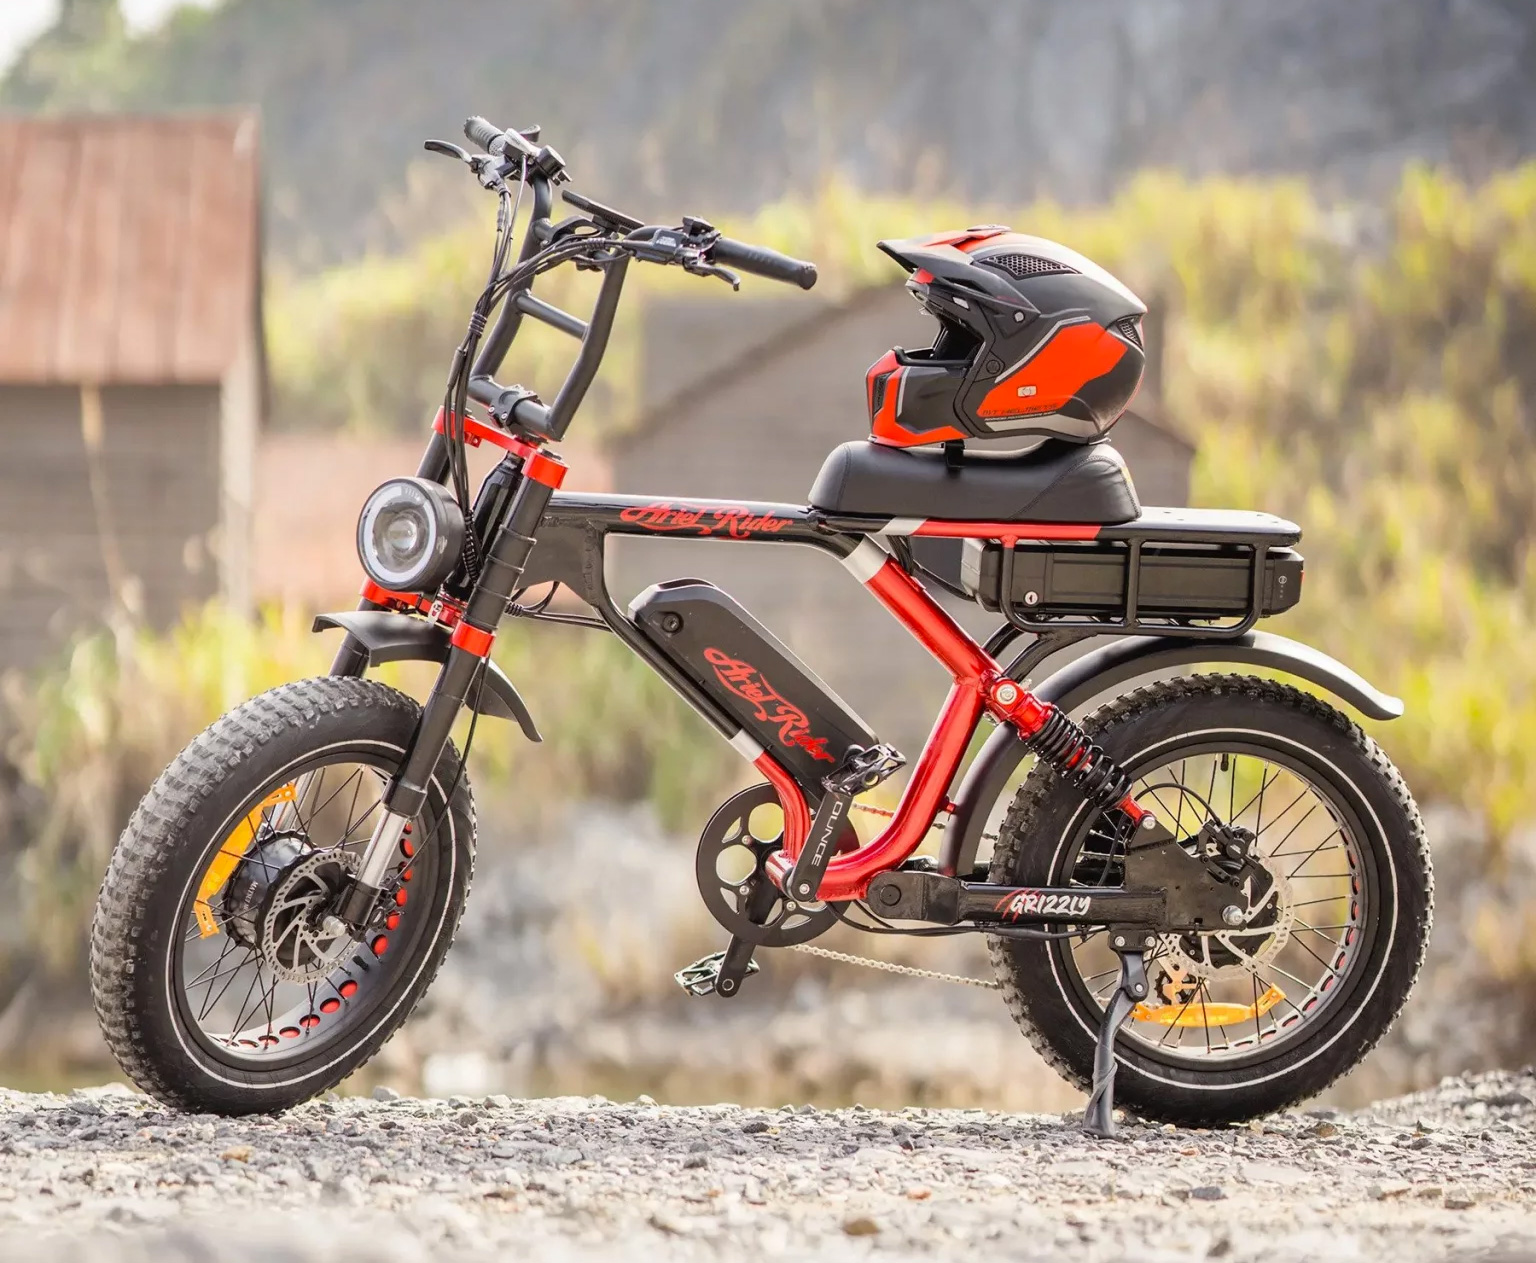 The Grizzly E-Bike Doubles Down On Power at werd.com